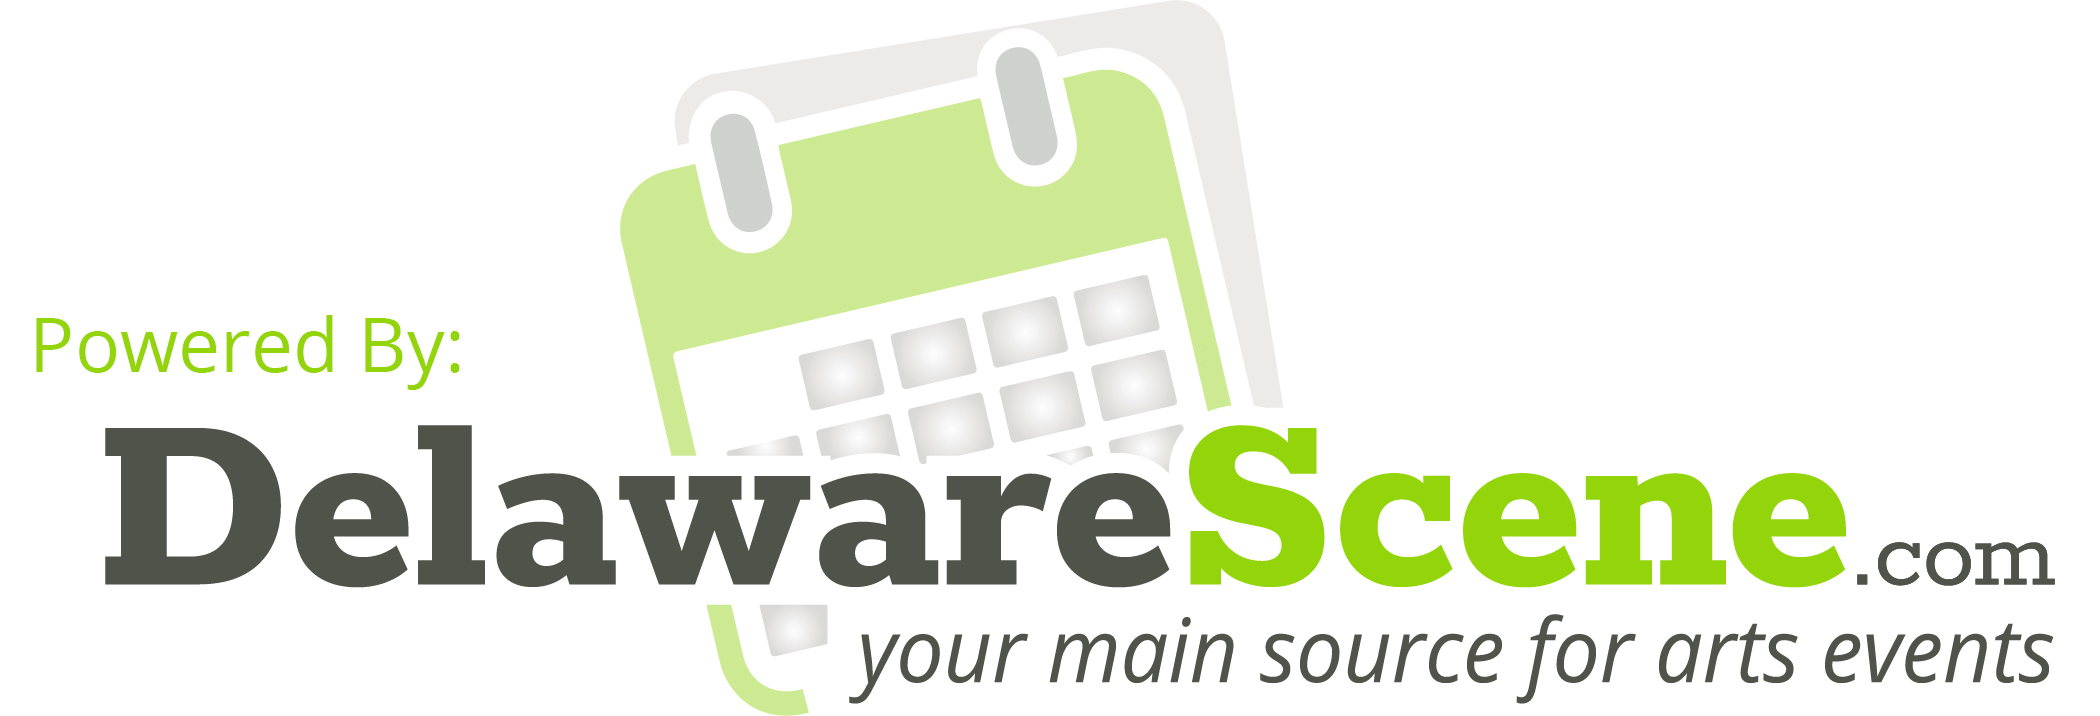 Powered by: Delaware Scene.com - Your main source for arts events logo graphic